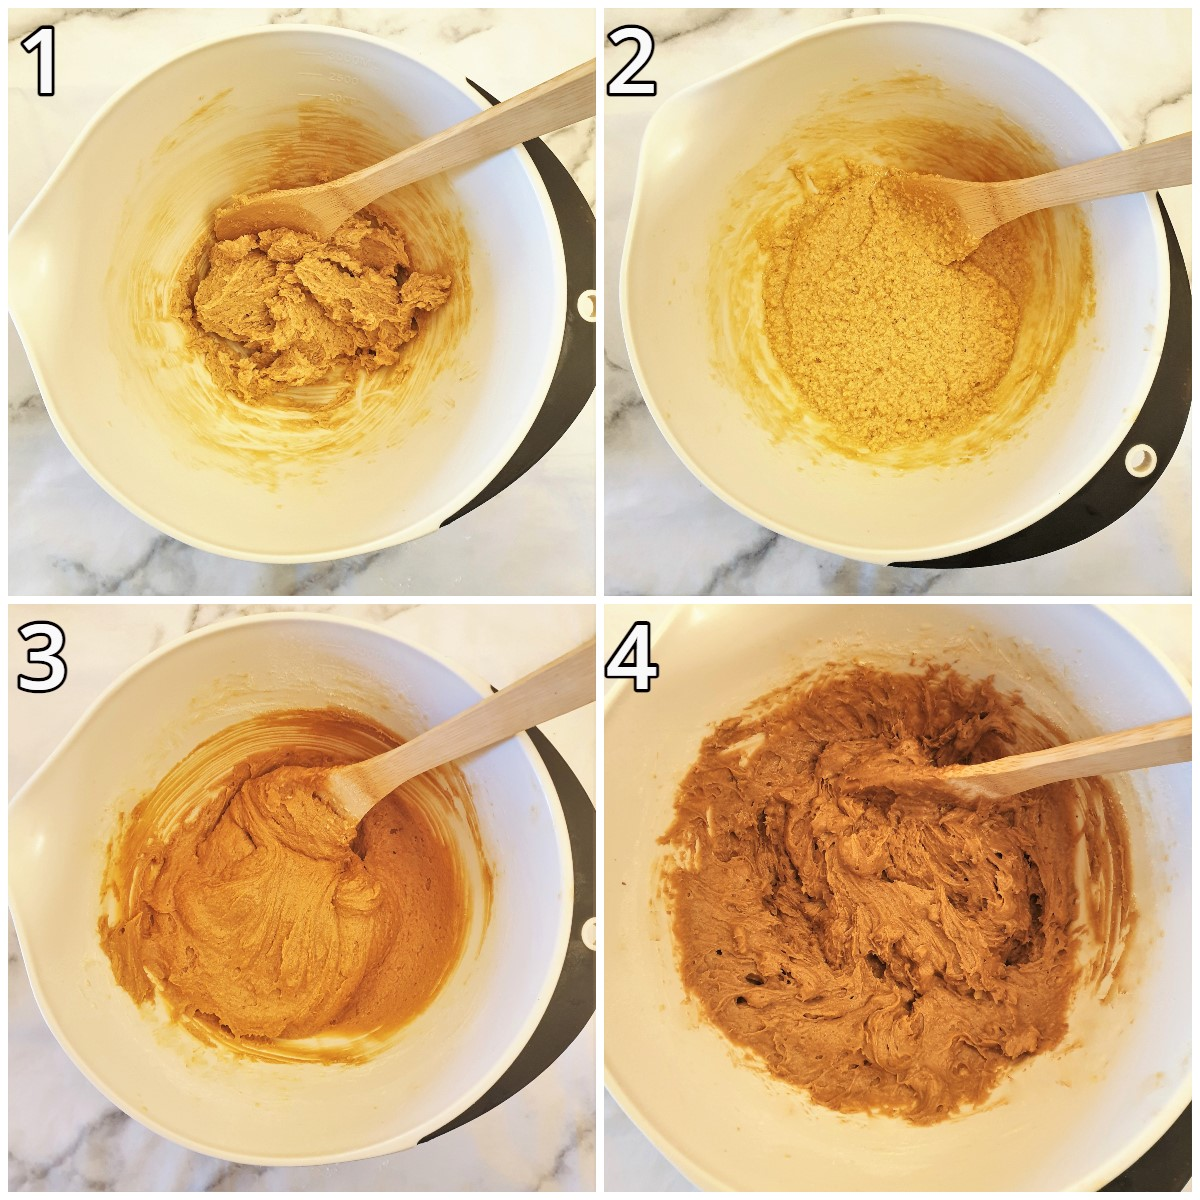 Steps for mixing the coffee walnut cake.